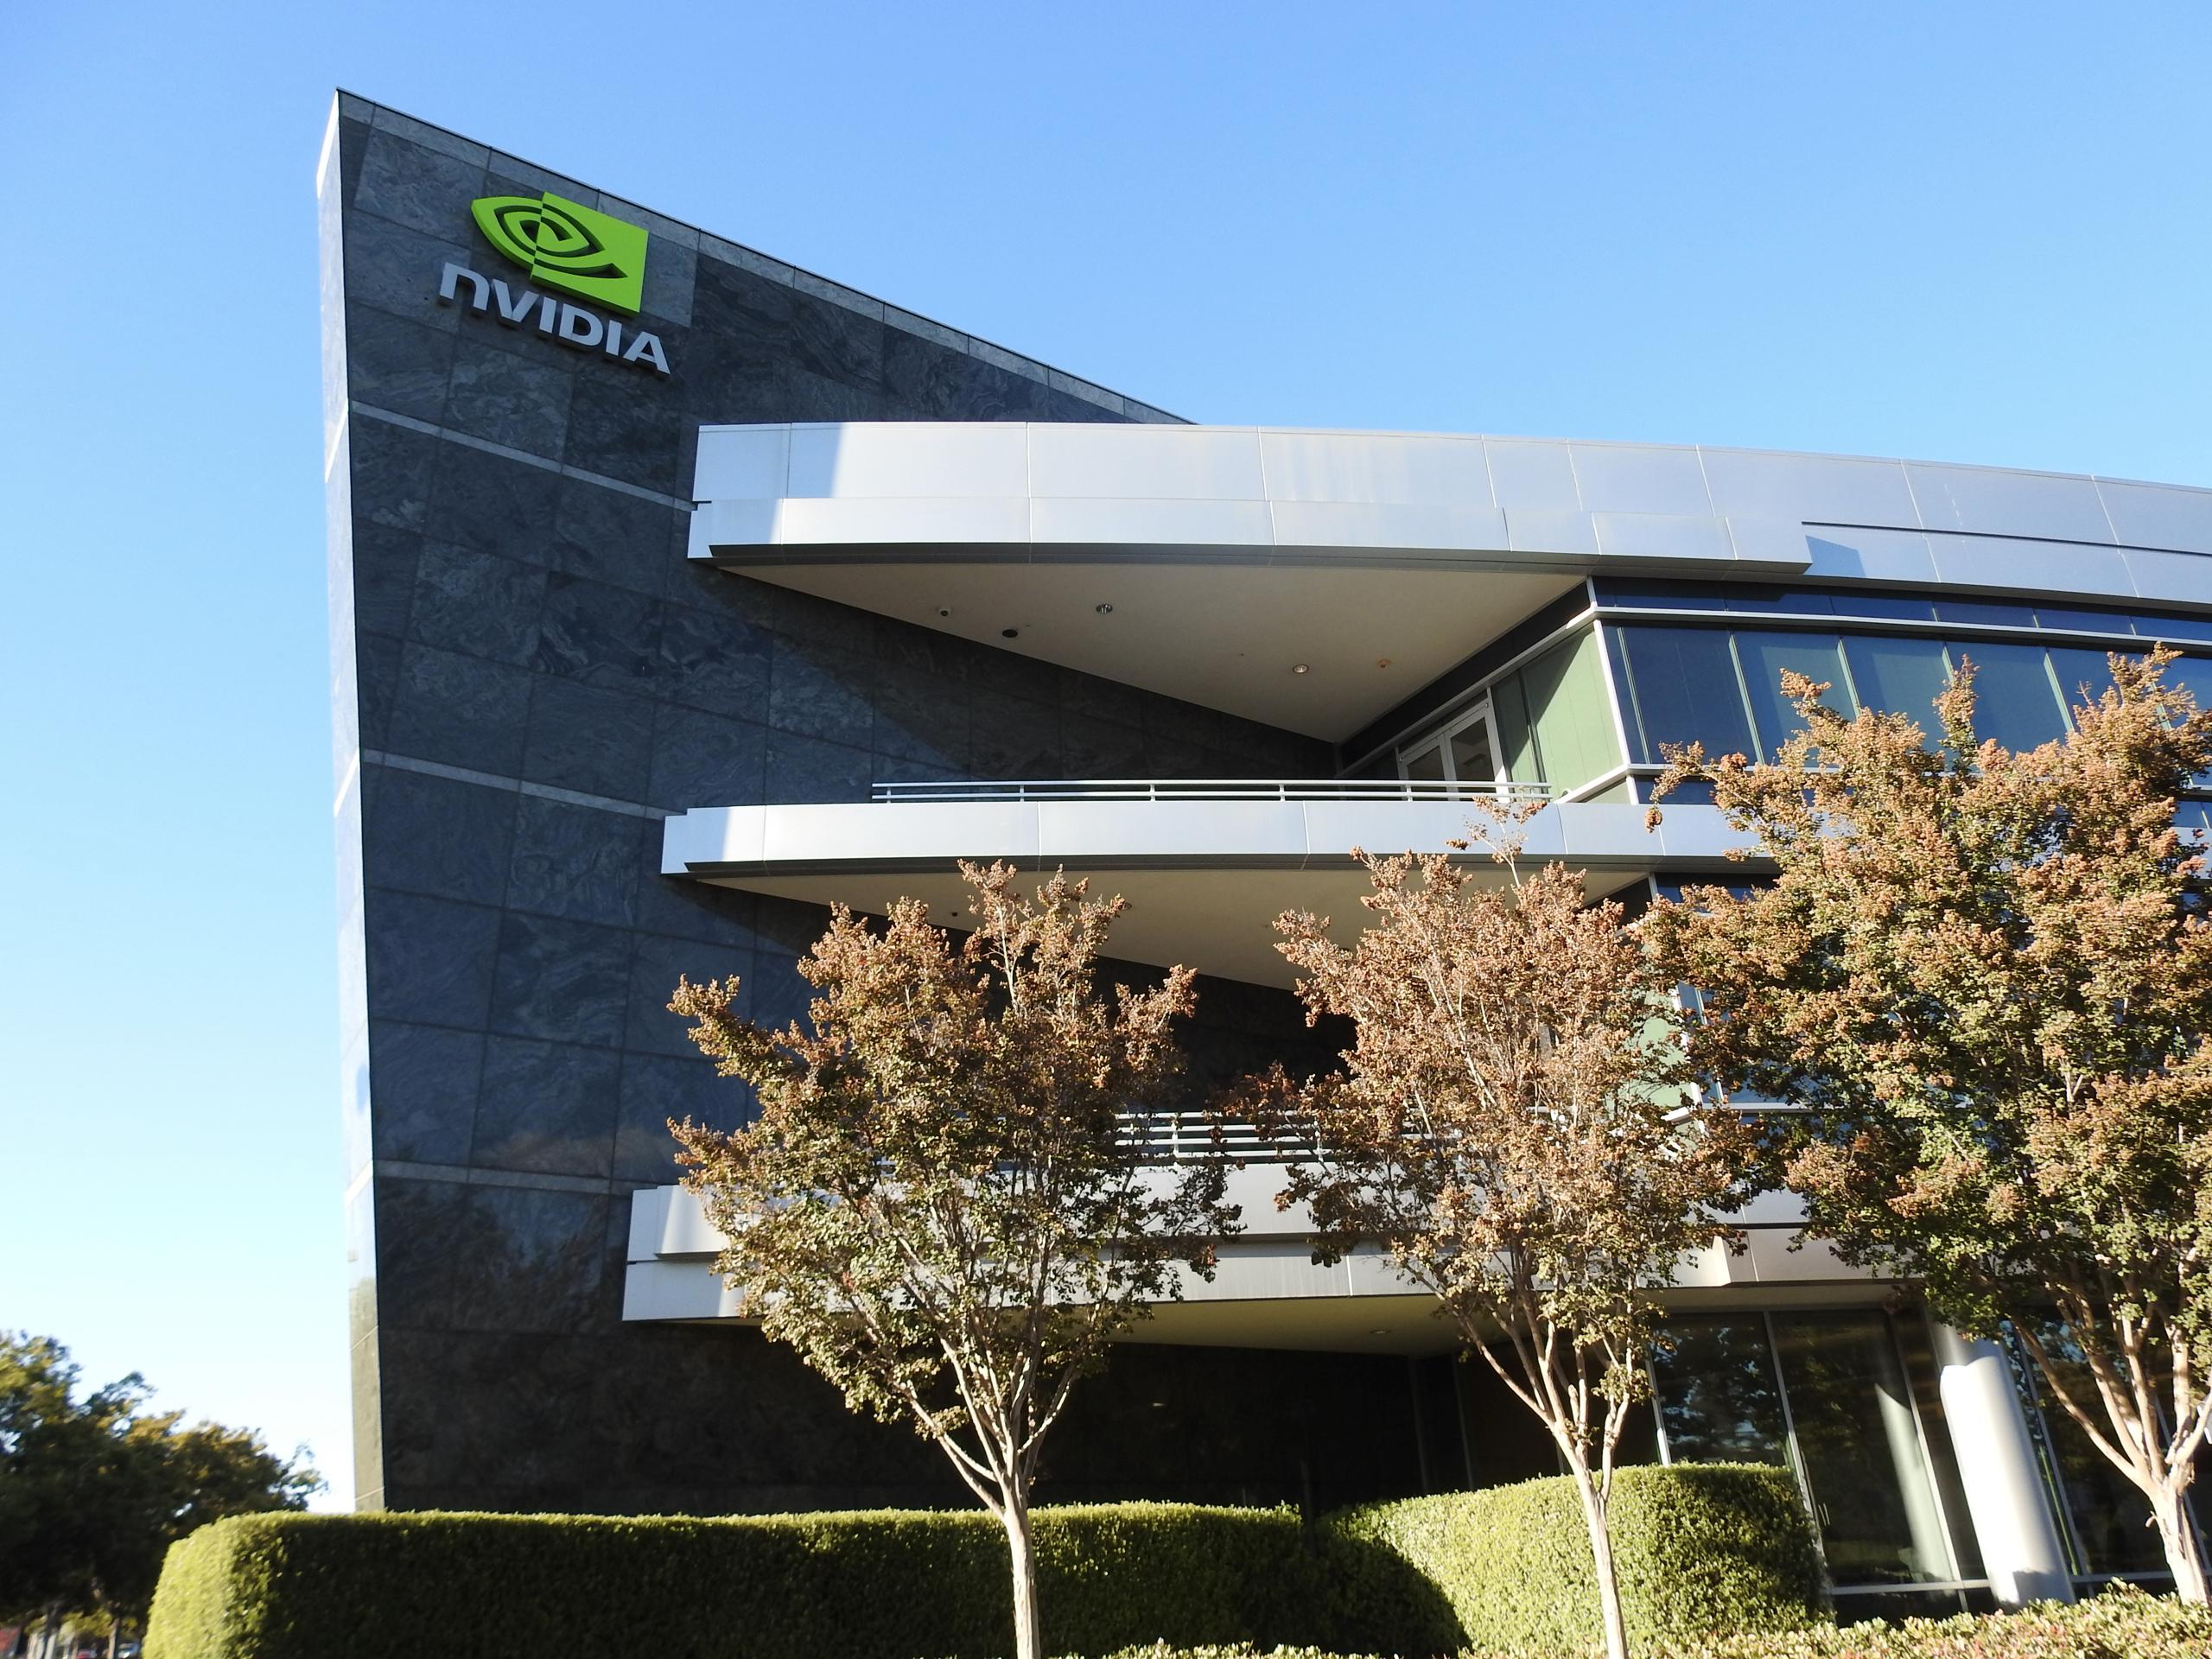 NVIDIA Acquisitions, 12 Deals Between 2002 and 2019 | Mergr